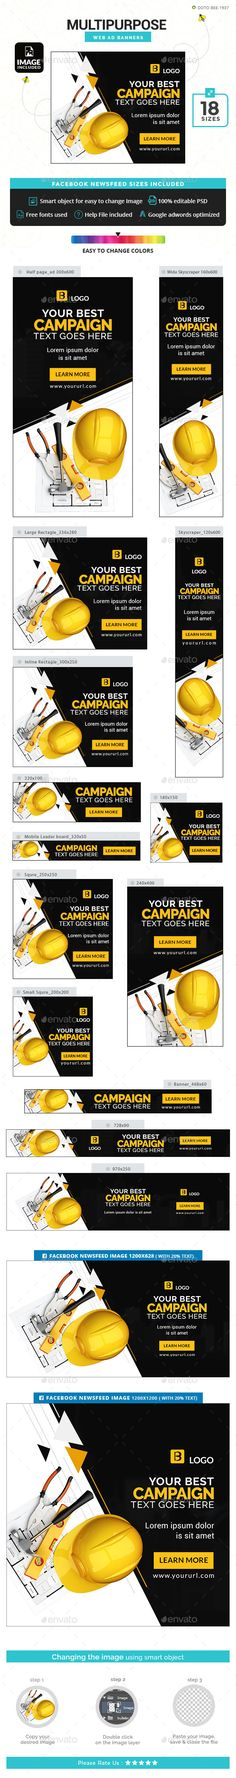 Multipurpose Banners - Images Included - Banners & Ads Web Elements Download here : https://graphicriver.net/item/multipurpose-banners-images-included/19543721?s_rank=124&ref=Al-fatih